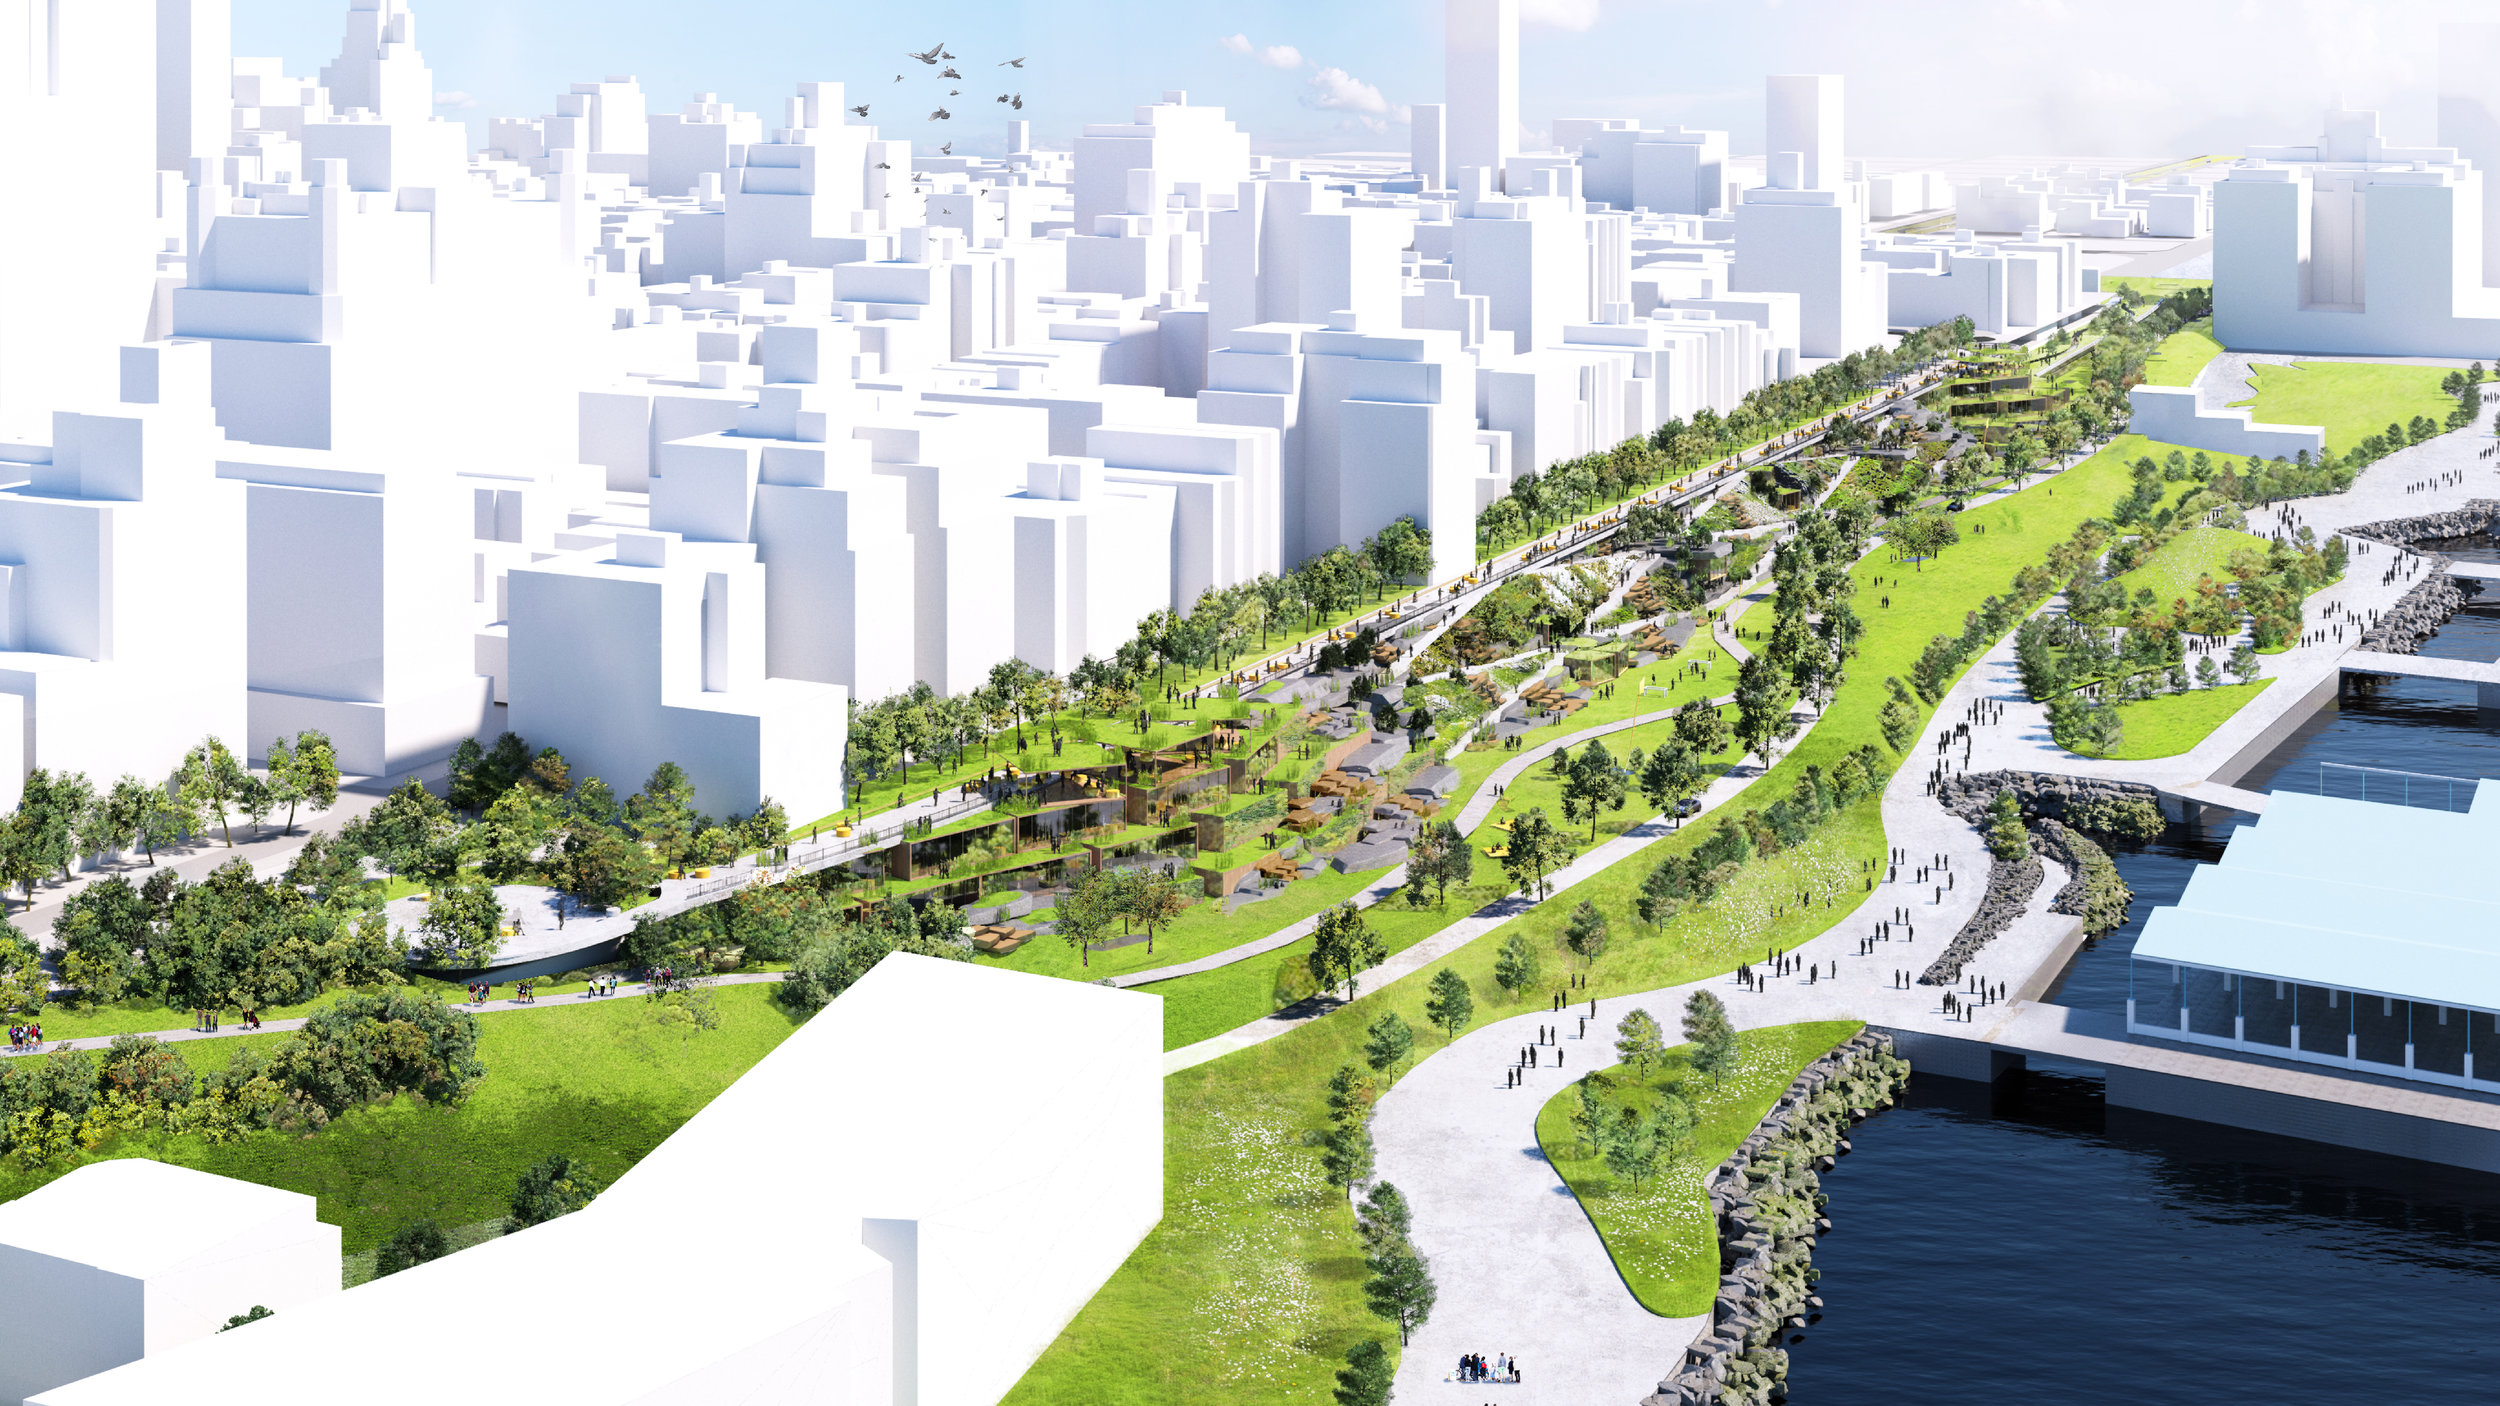 The release of the proposal came as the New York mayor announced plans to form an expert panel to look at replacing the Brooklyn Queens Expressway. Image credit - (BIG) Bjarke Ingels Group.